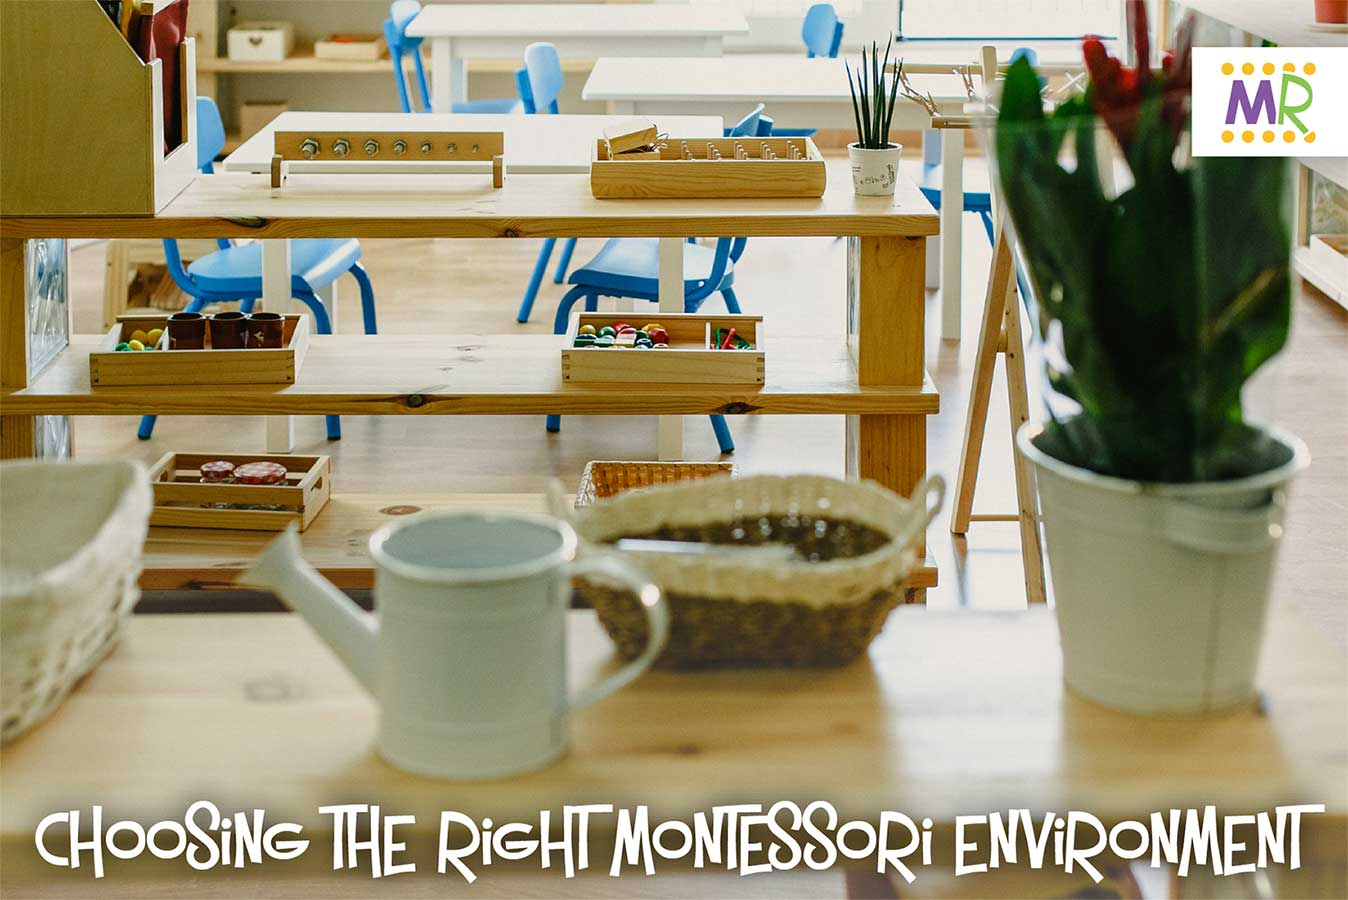 Montessori Rocks - Choosing the right Montessori environment (closeup of a table in a classroom with a plant & watering can)